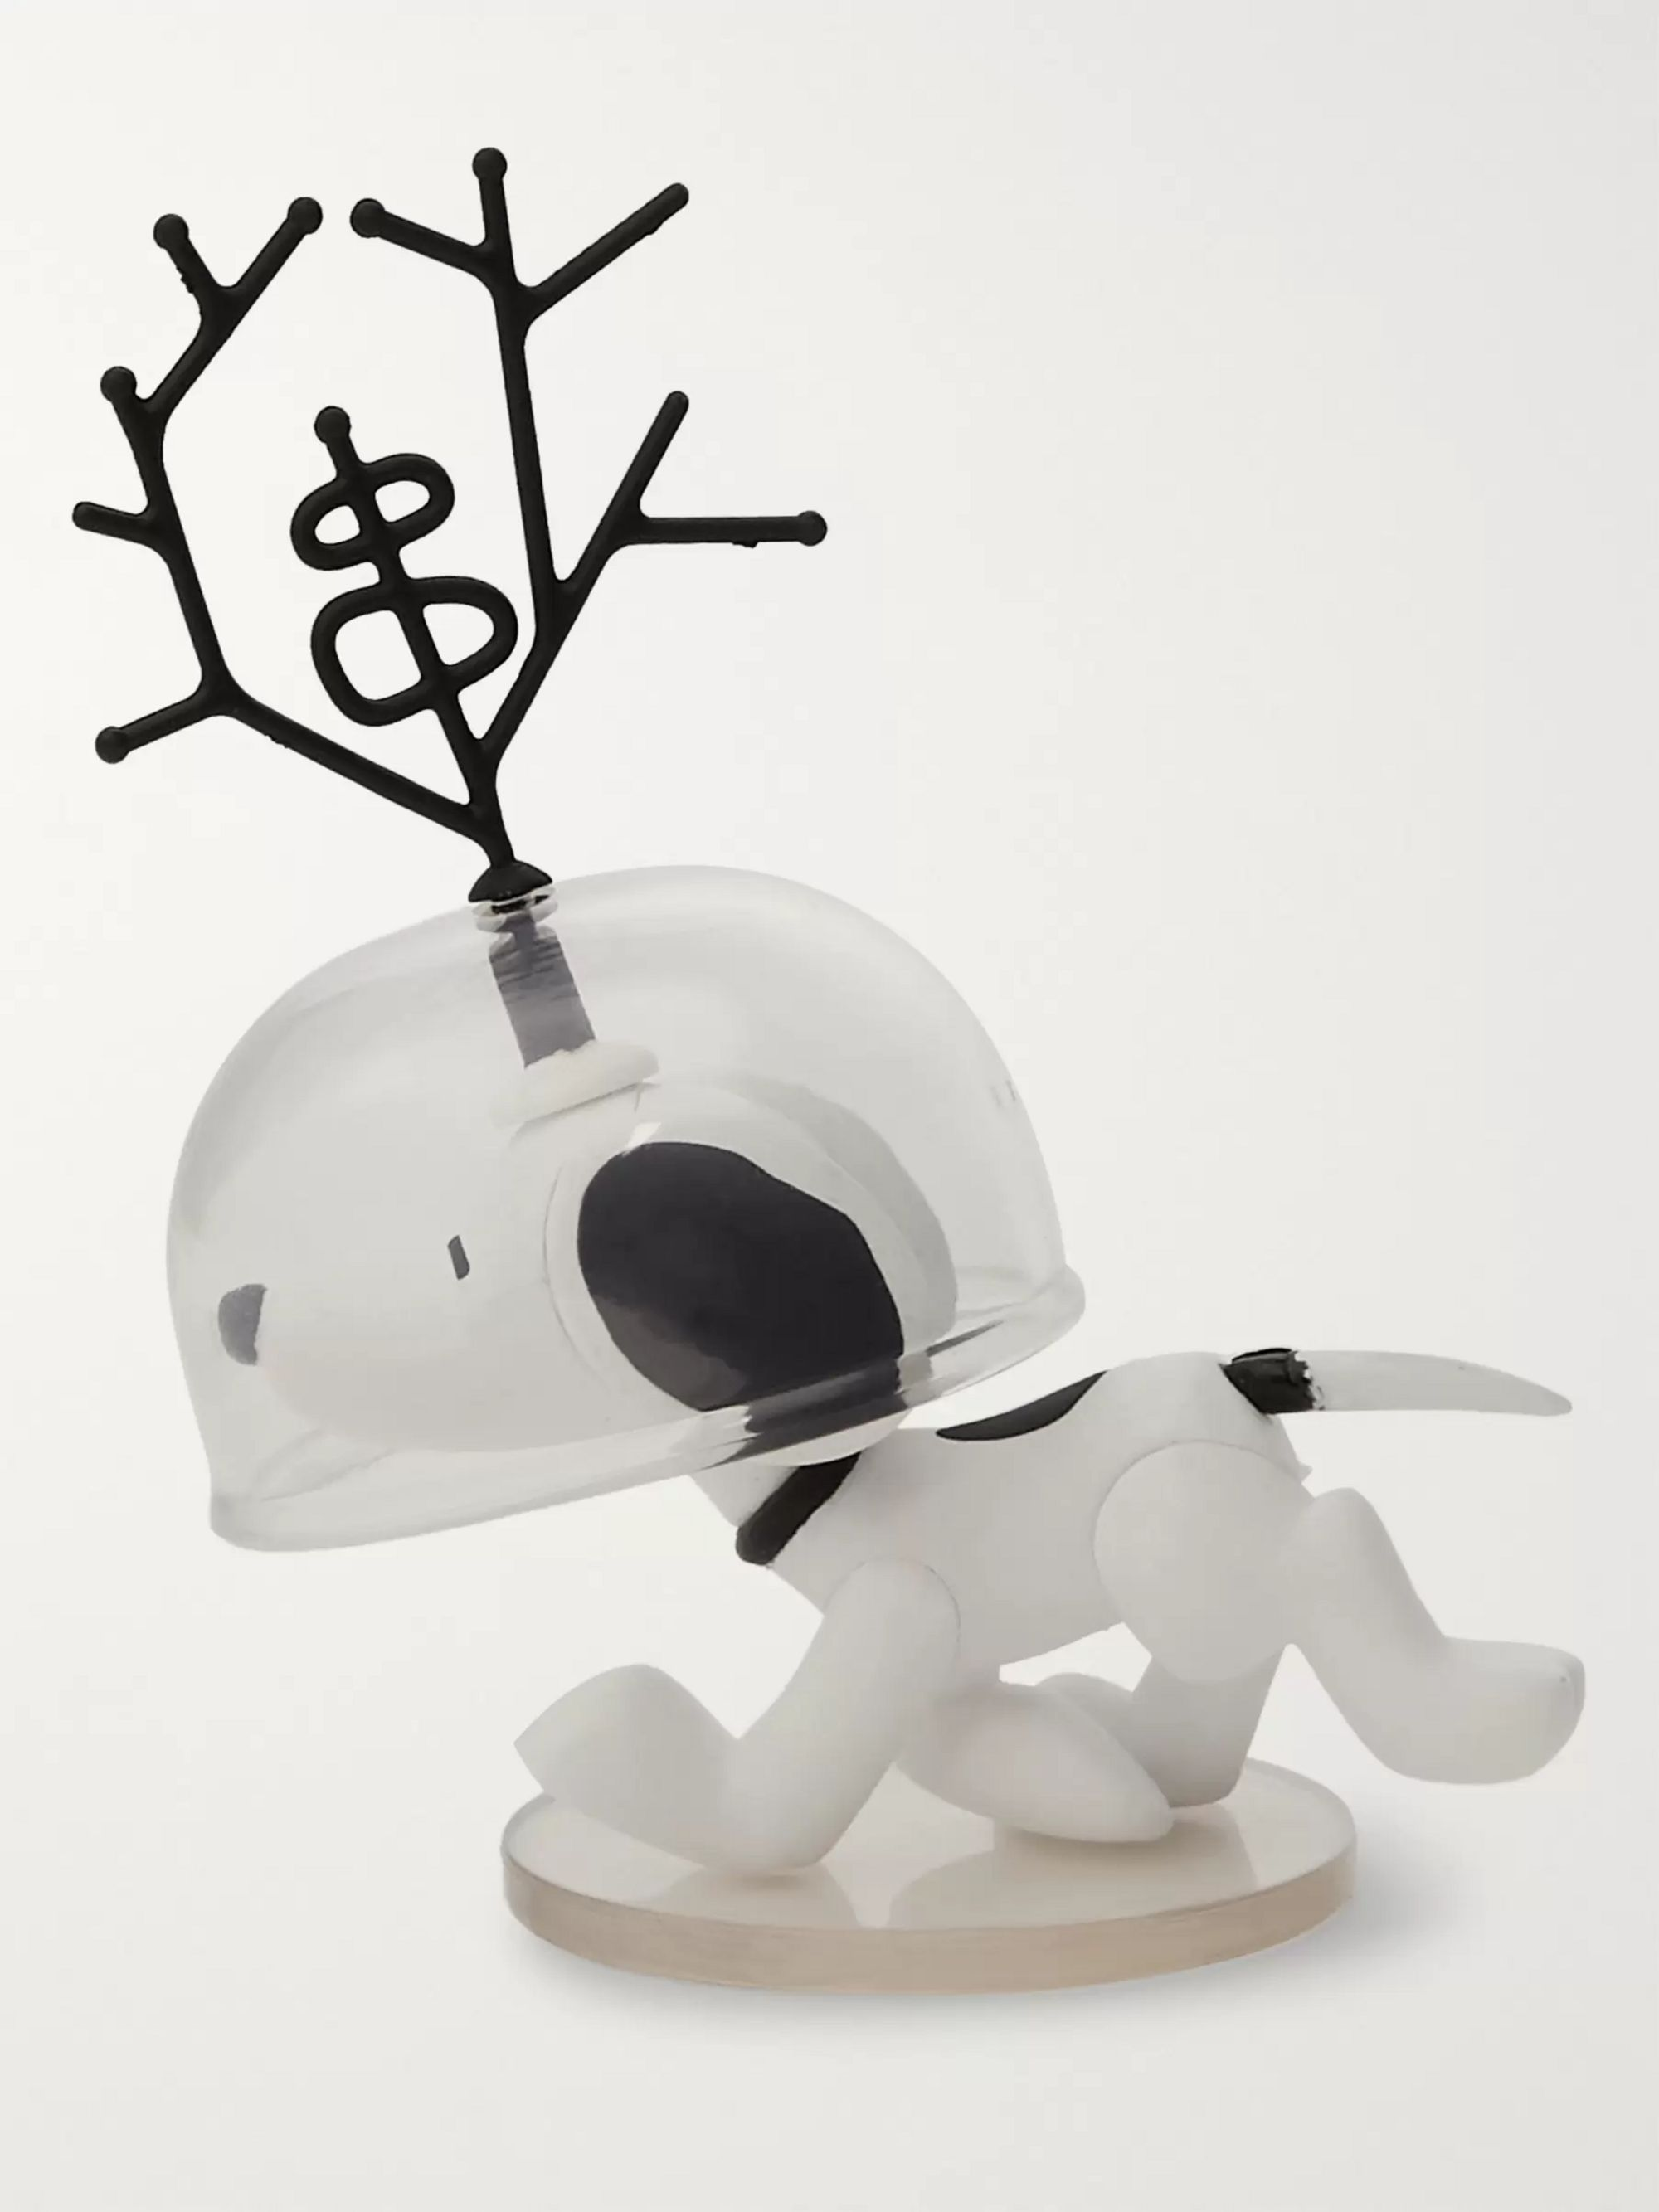 Medicom Ultra Detail Figure Series 10 No.493 Astronaut Snoopy